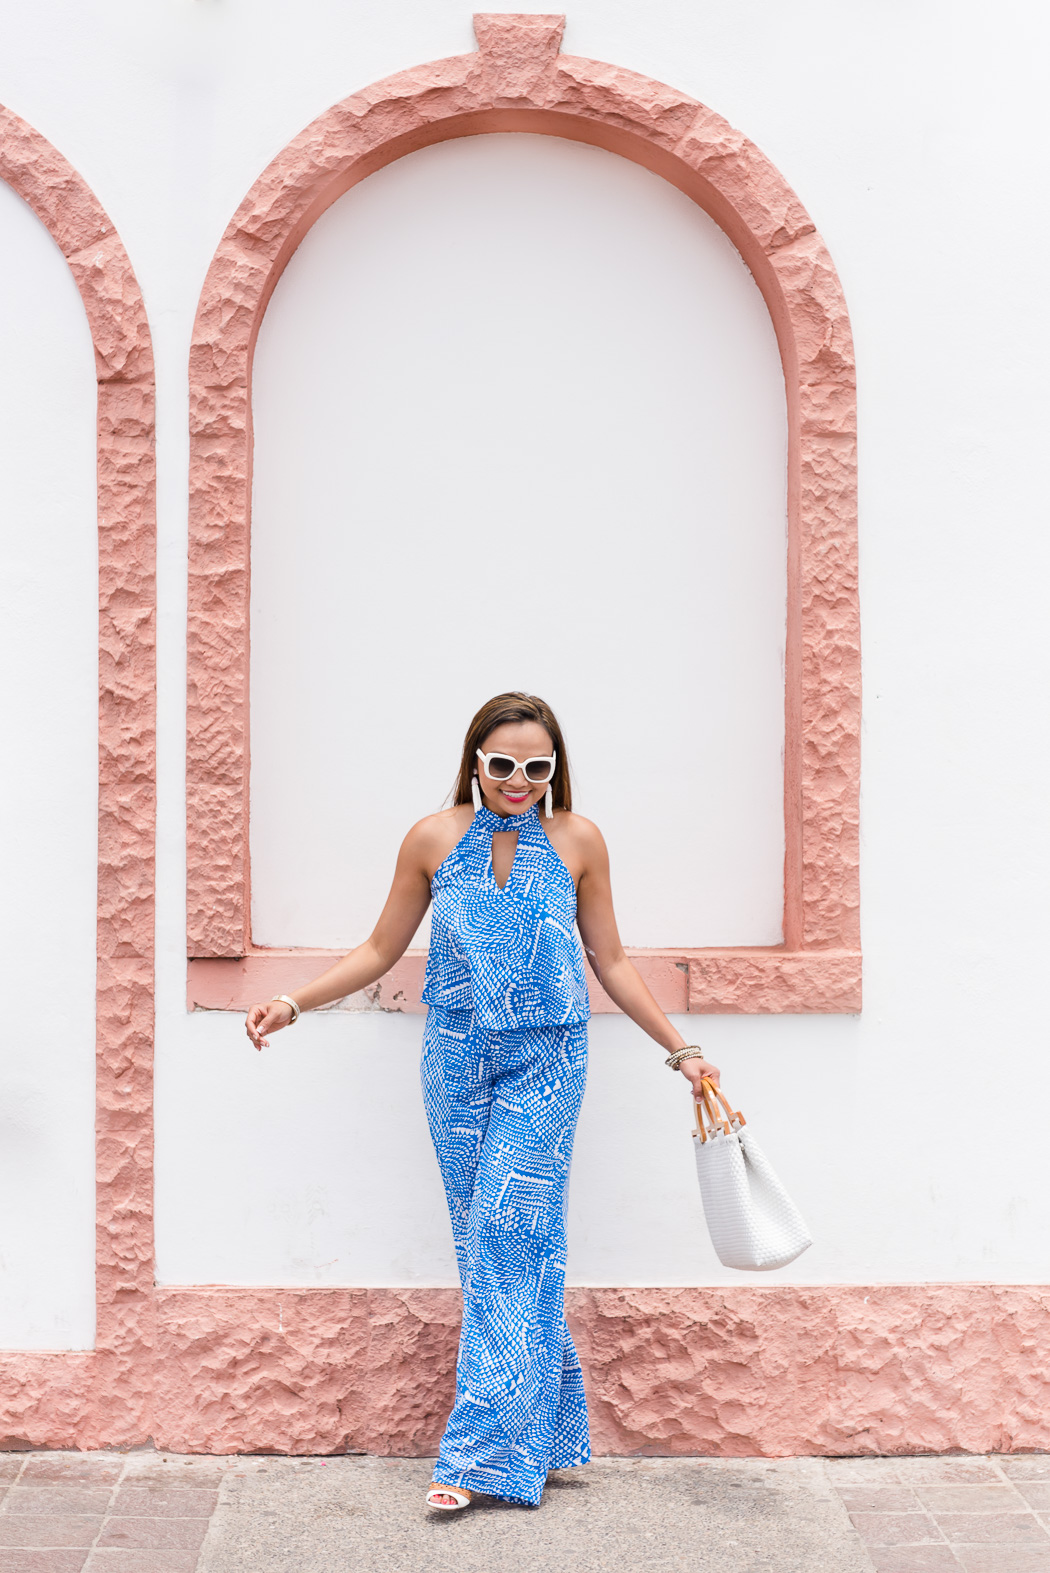 blue, jumpsuit, red dress boutique, kate spade sunglasses, jumper, mexico, puerto vallarta, malecon, mexico outfit idea, summer outfit idea, colorsofmei, fashion blog, outfit ideas, outfit blog, jumpsuit ideas